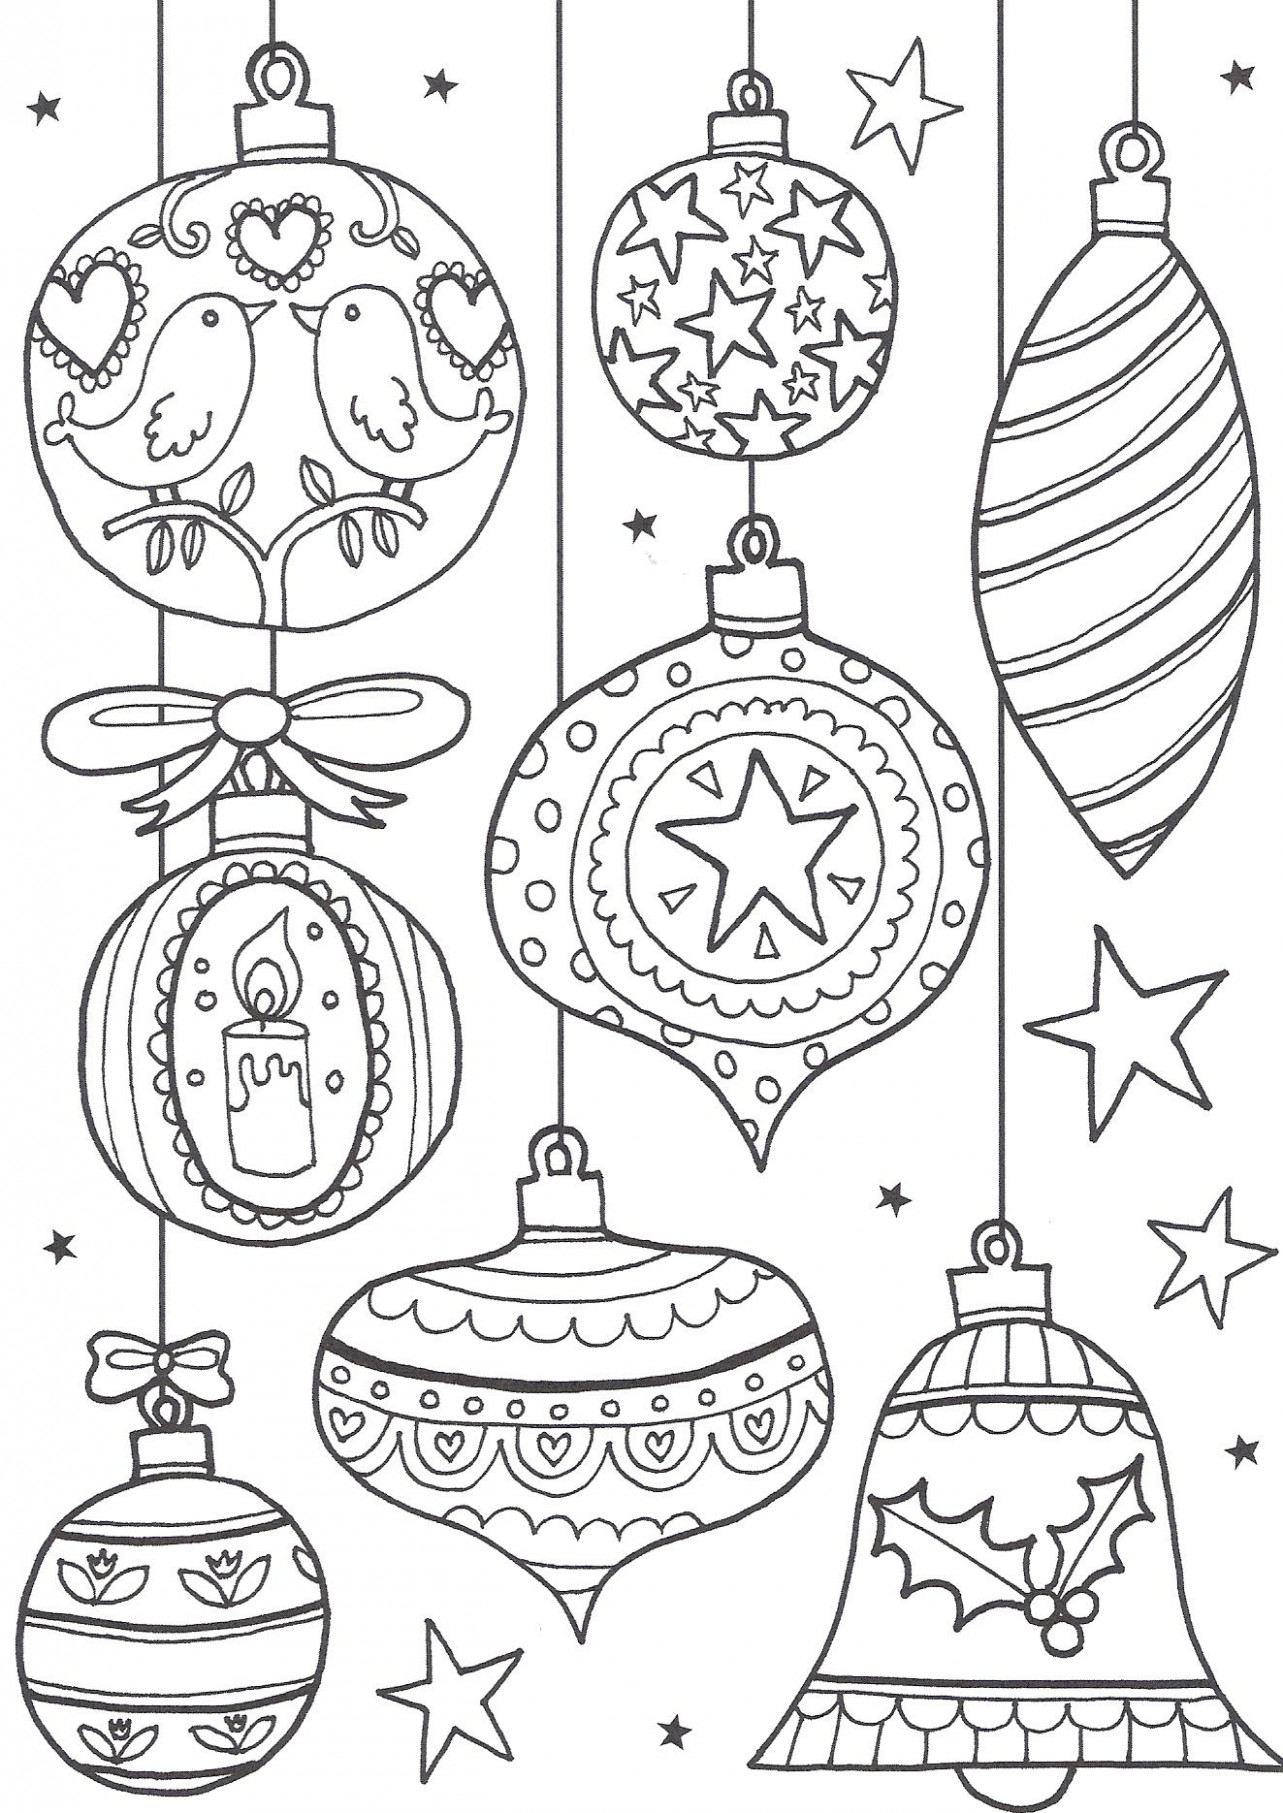 Free Christmas Colouring Pages for Adults - The Ultimate Roundup ...